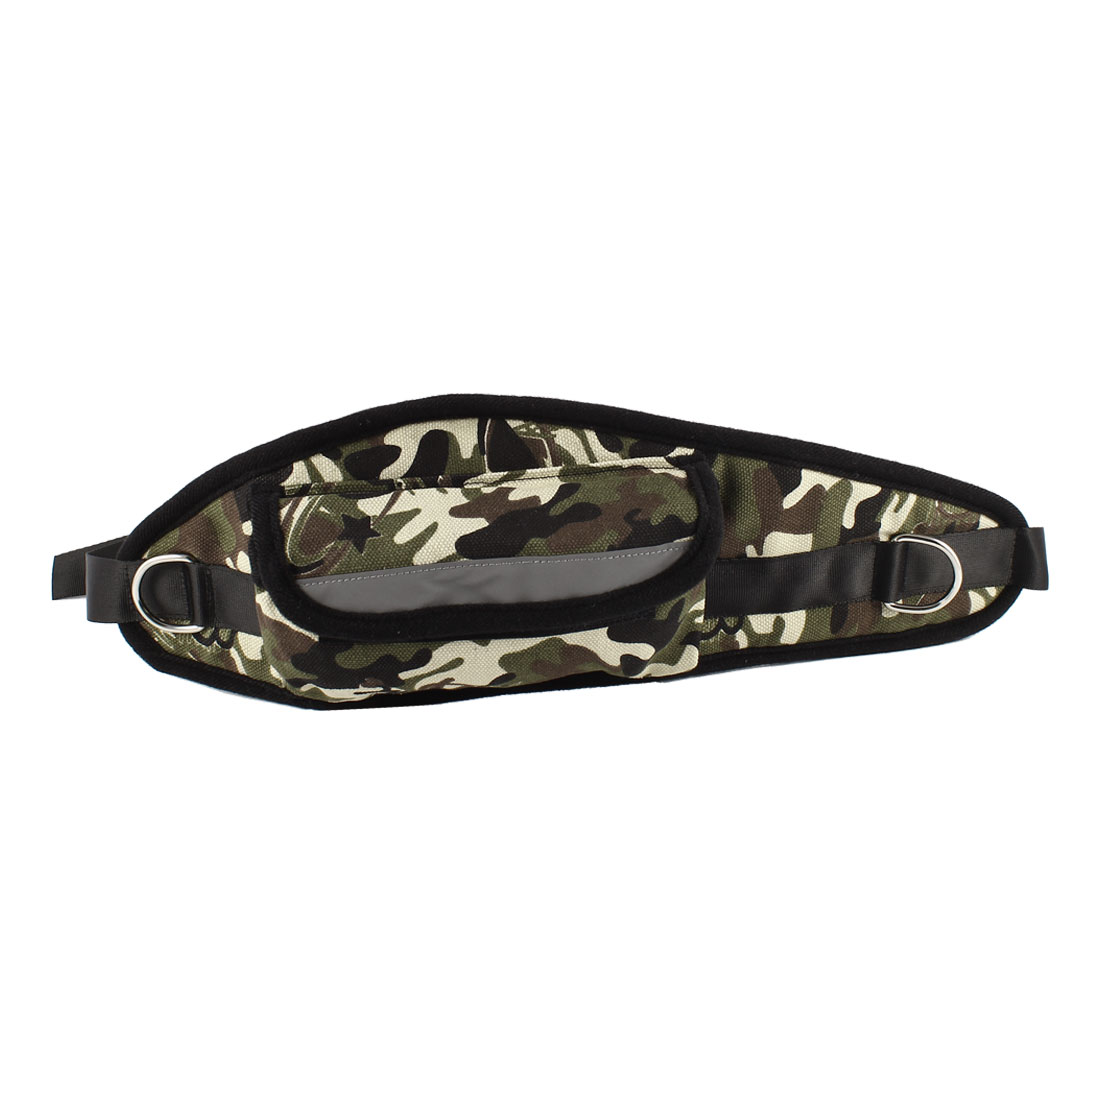 Camouflage Pattern Adjustable Release Buckle Pet Dog Leash Waist Pack